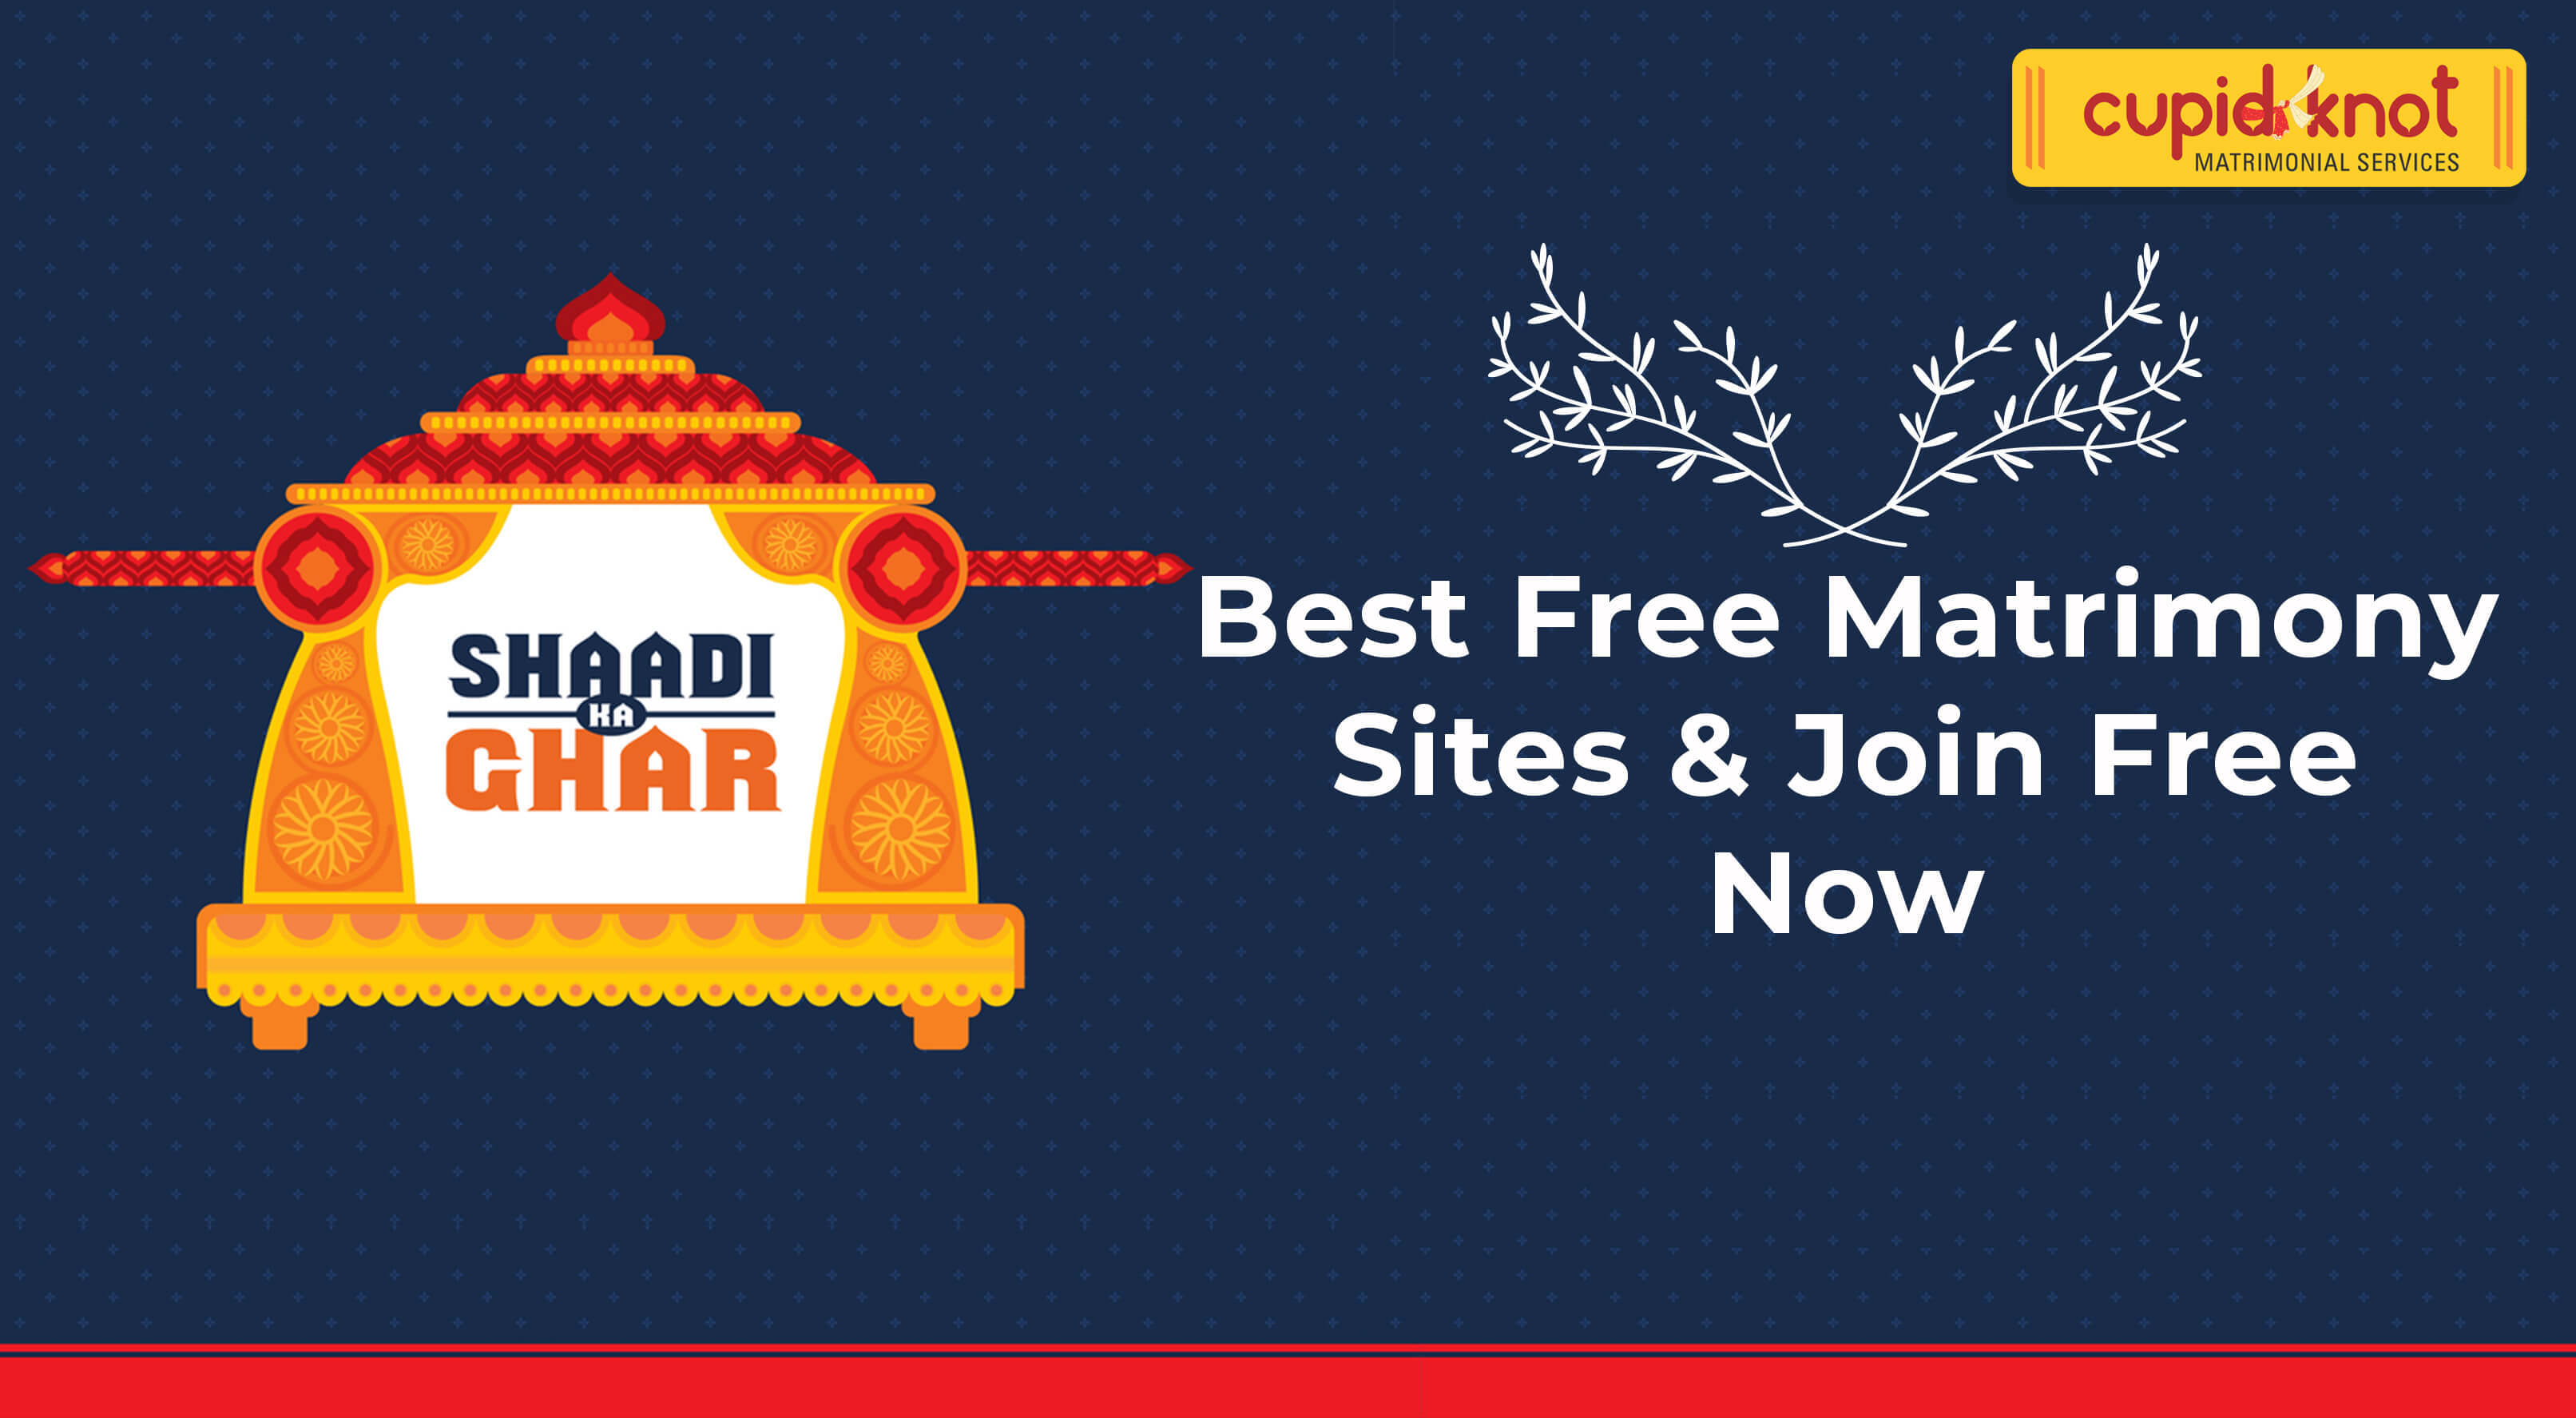 Best Free Matrimony Sites & Join Free Now